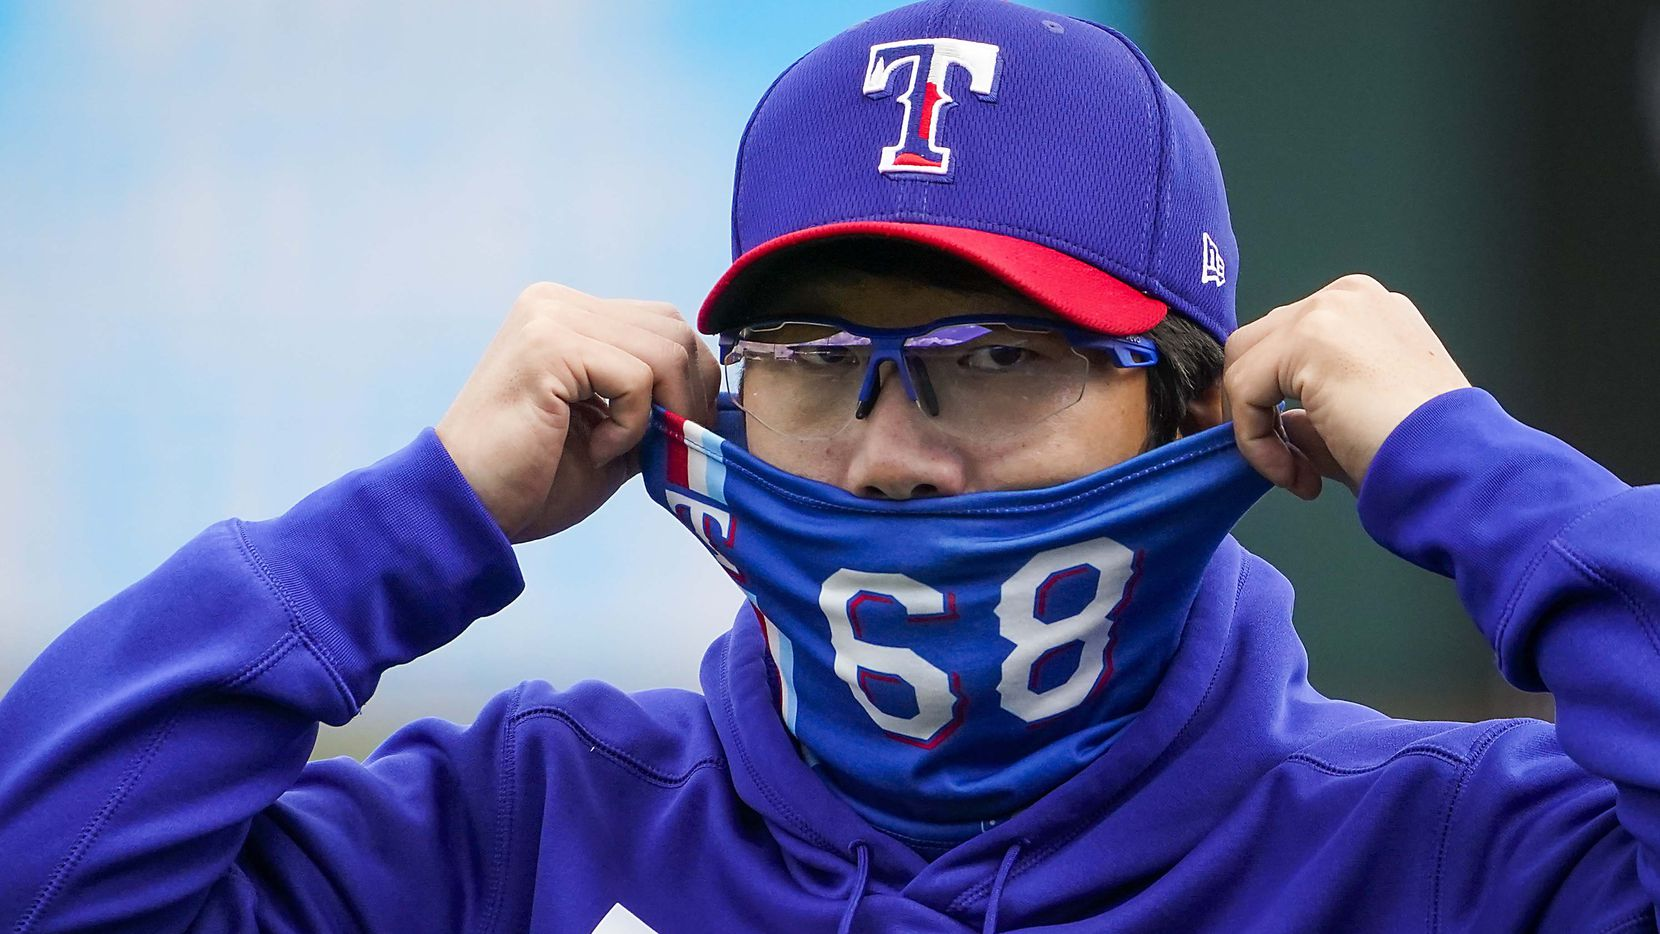 Texas Rangers pitcher Hyeon-jong Yang adjusts his face covering before of a spring training game against the San Diego Padres at Surprise Stadium on Thursday, March 4, 2021, in Surprise, Ariz.